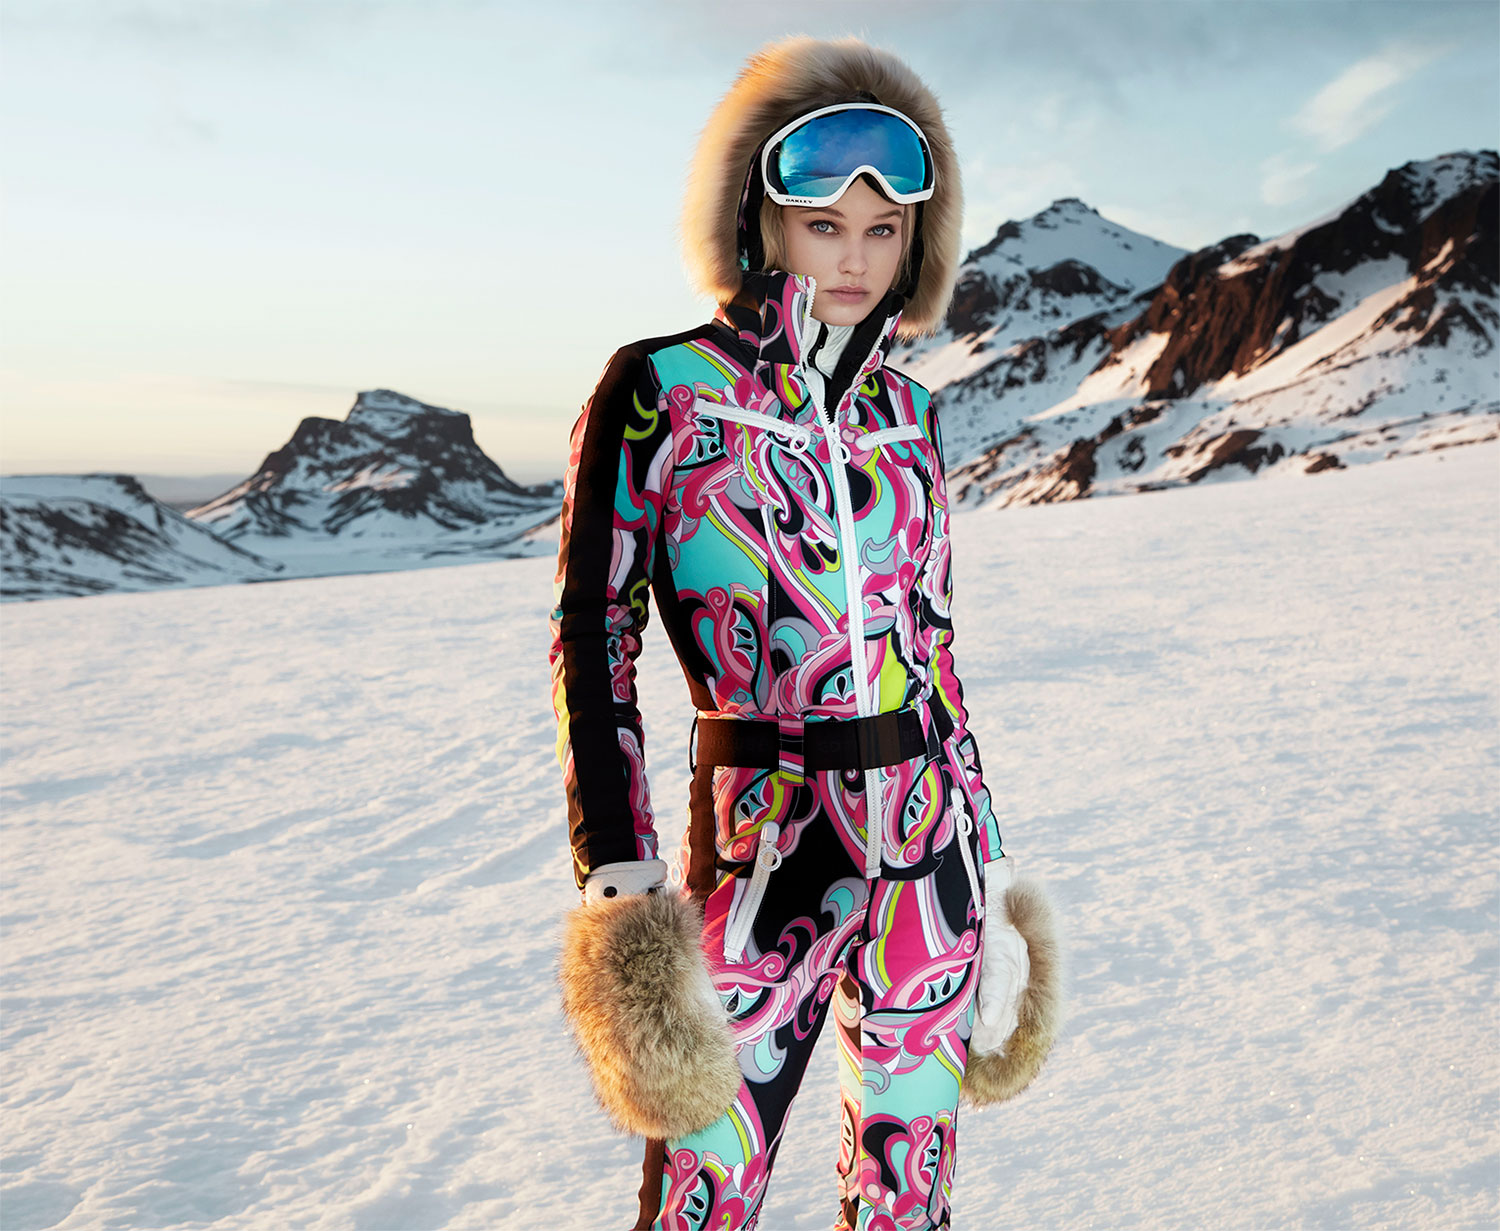 All in one ski suits from Winternational